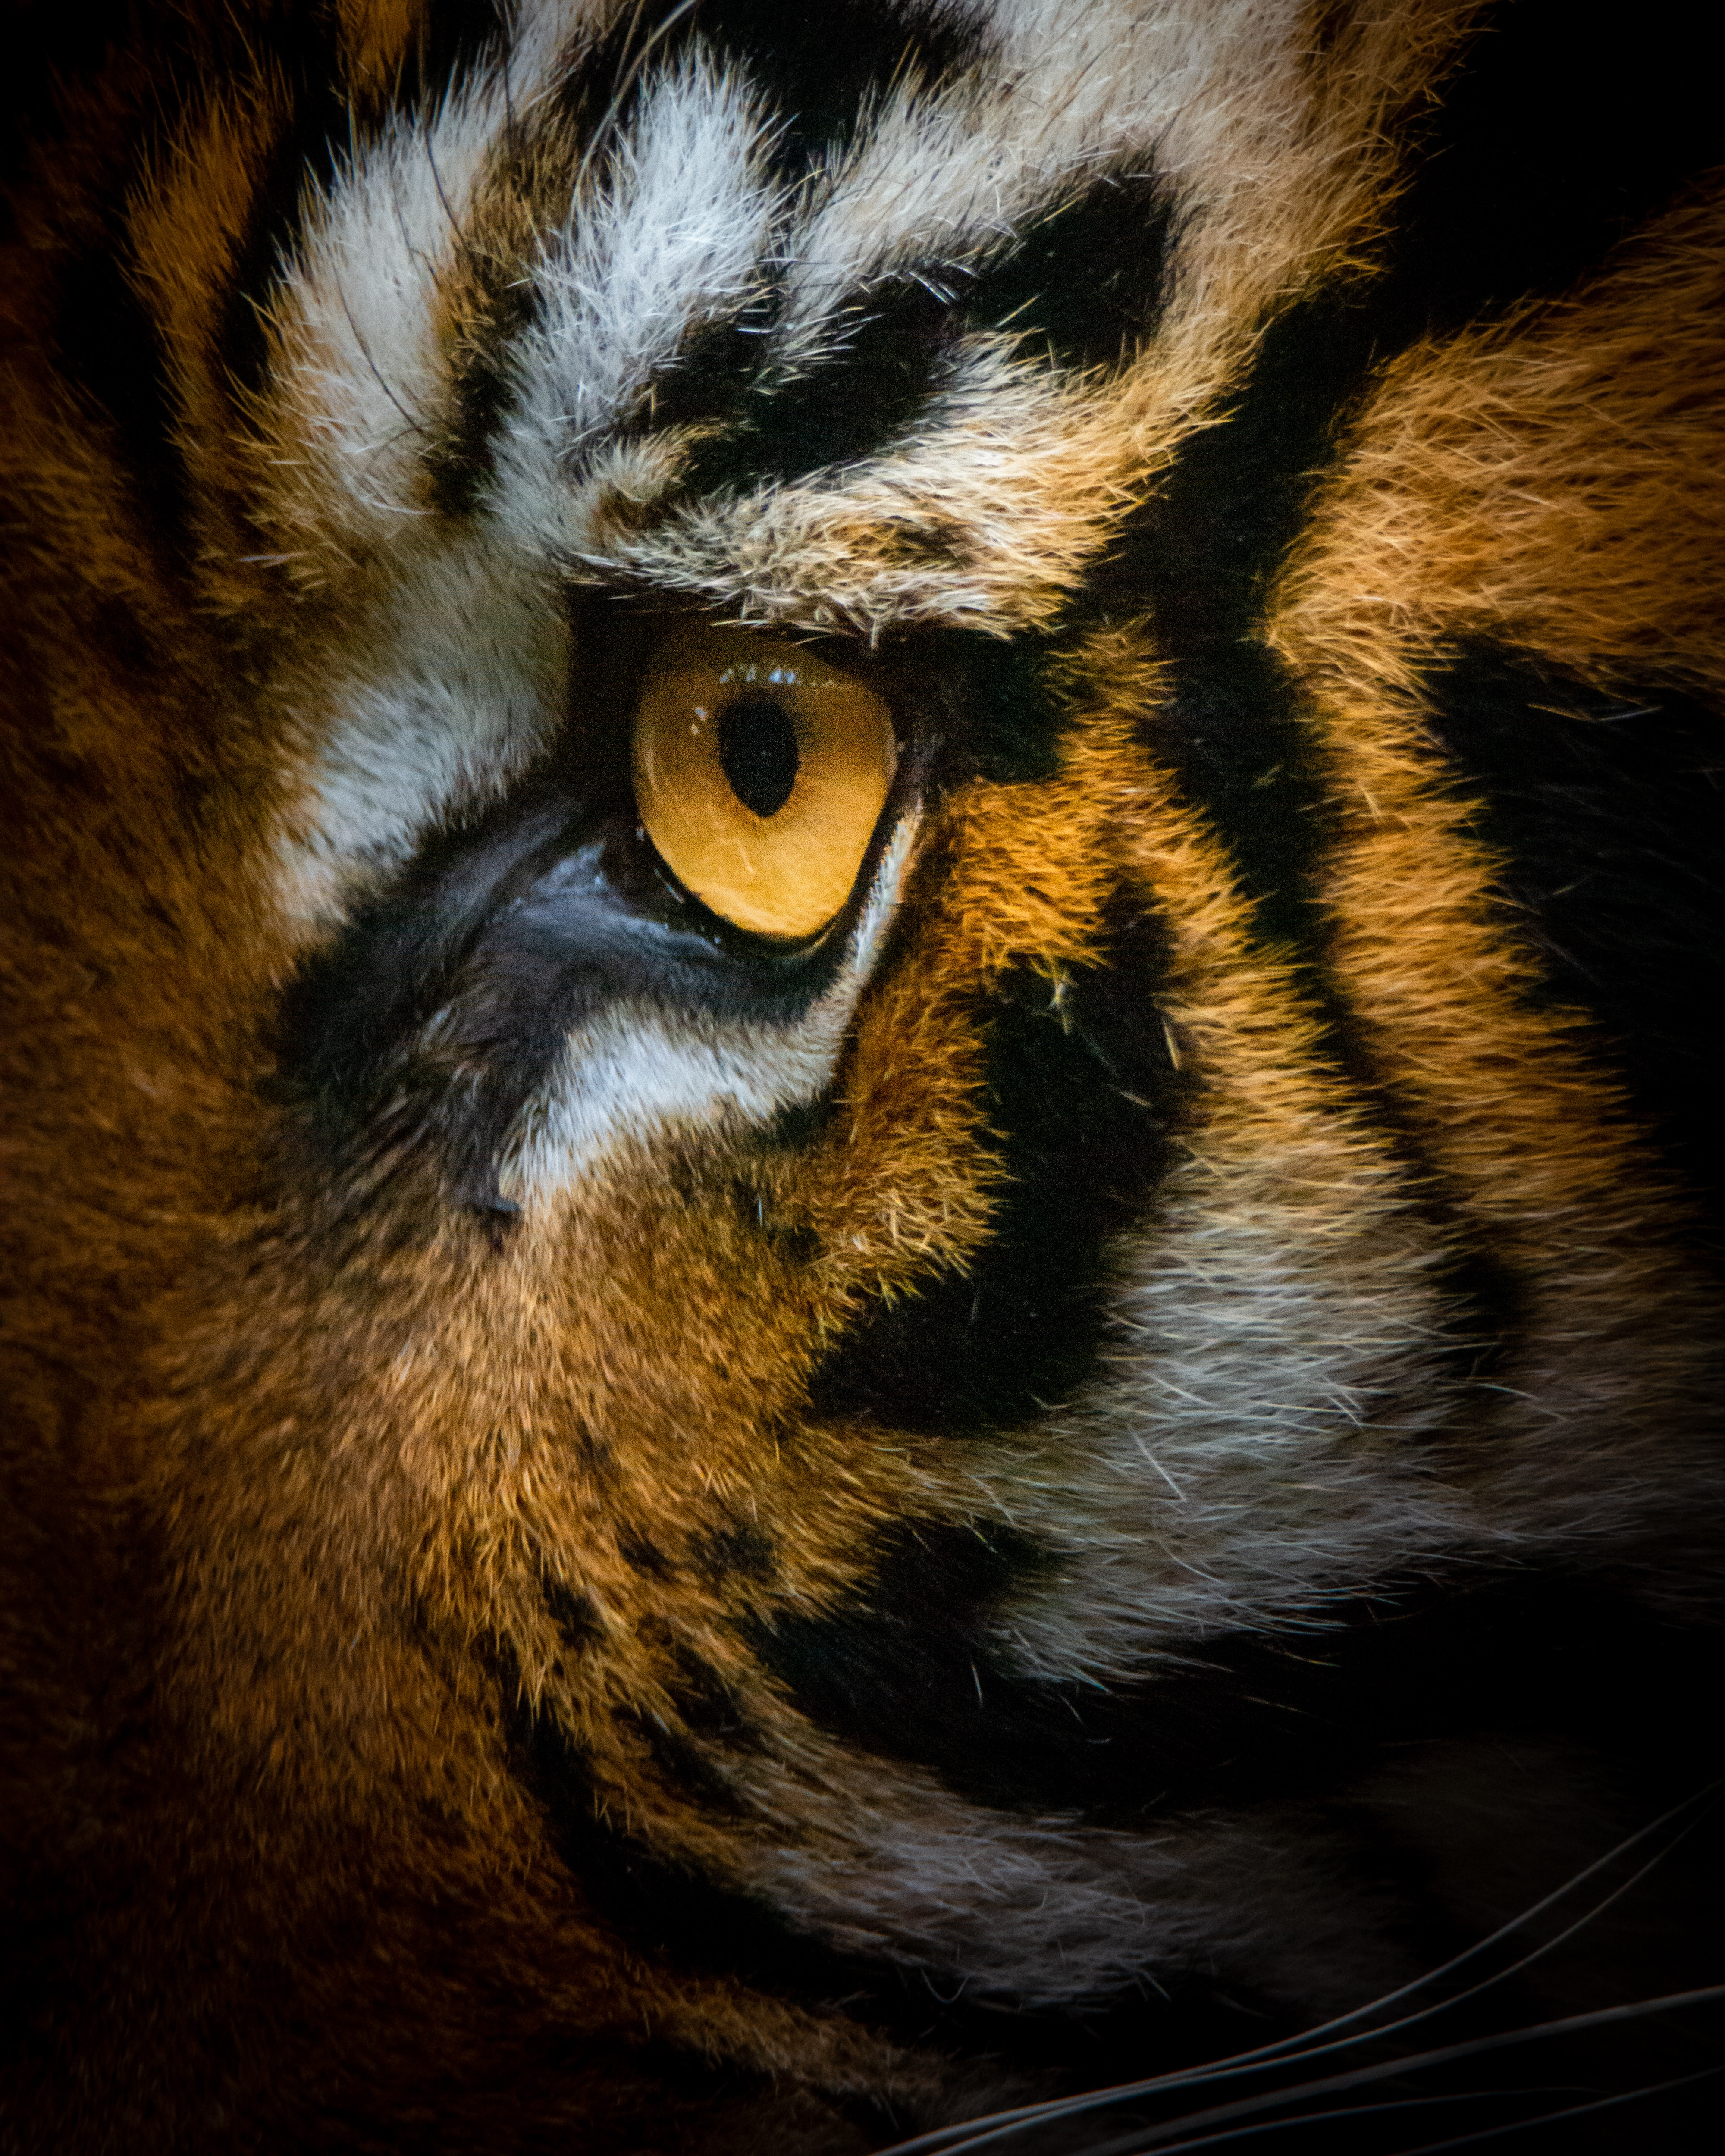 84636 download wallpaper Animals, Tiger, Eye, Macro screensavers and pictures for free